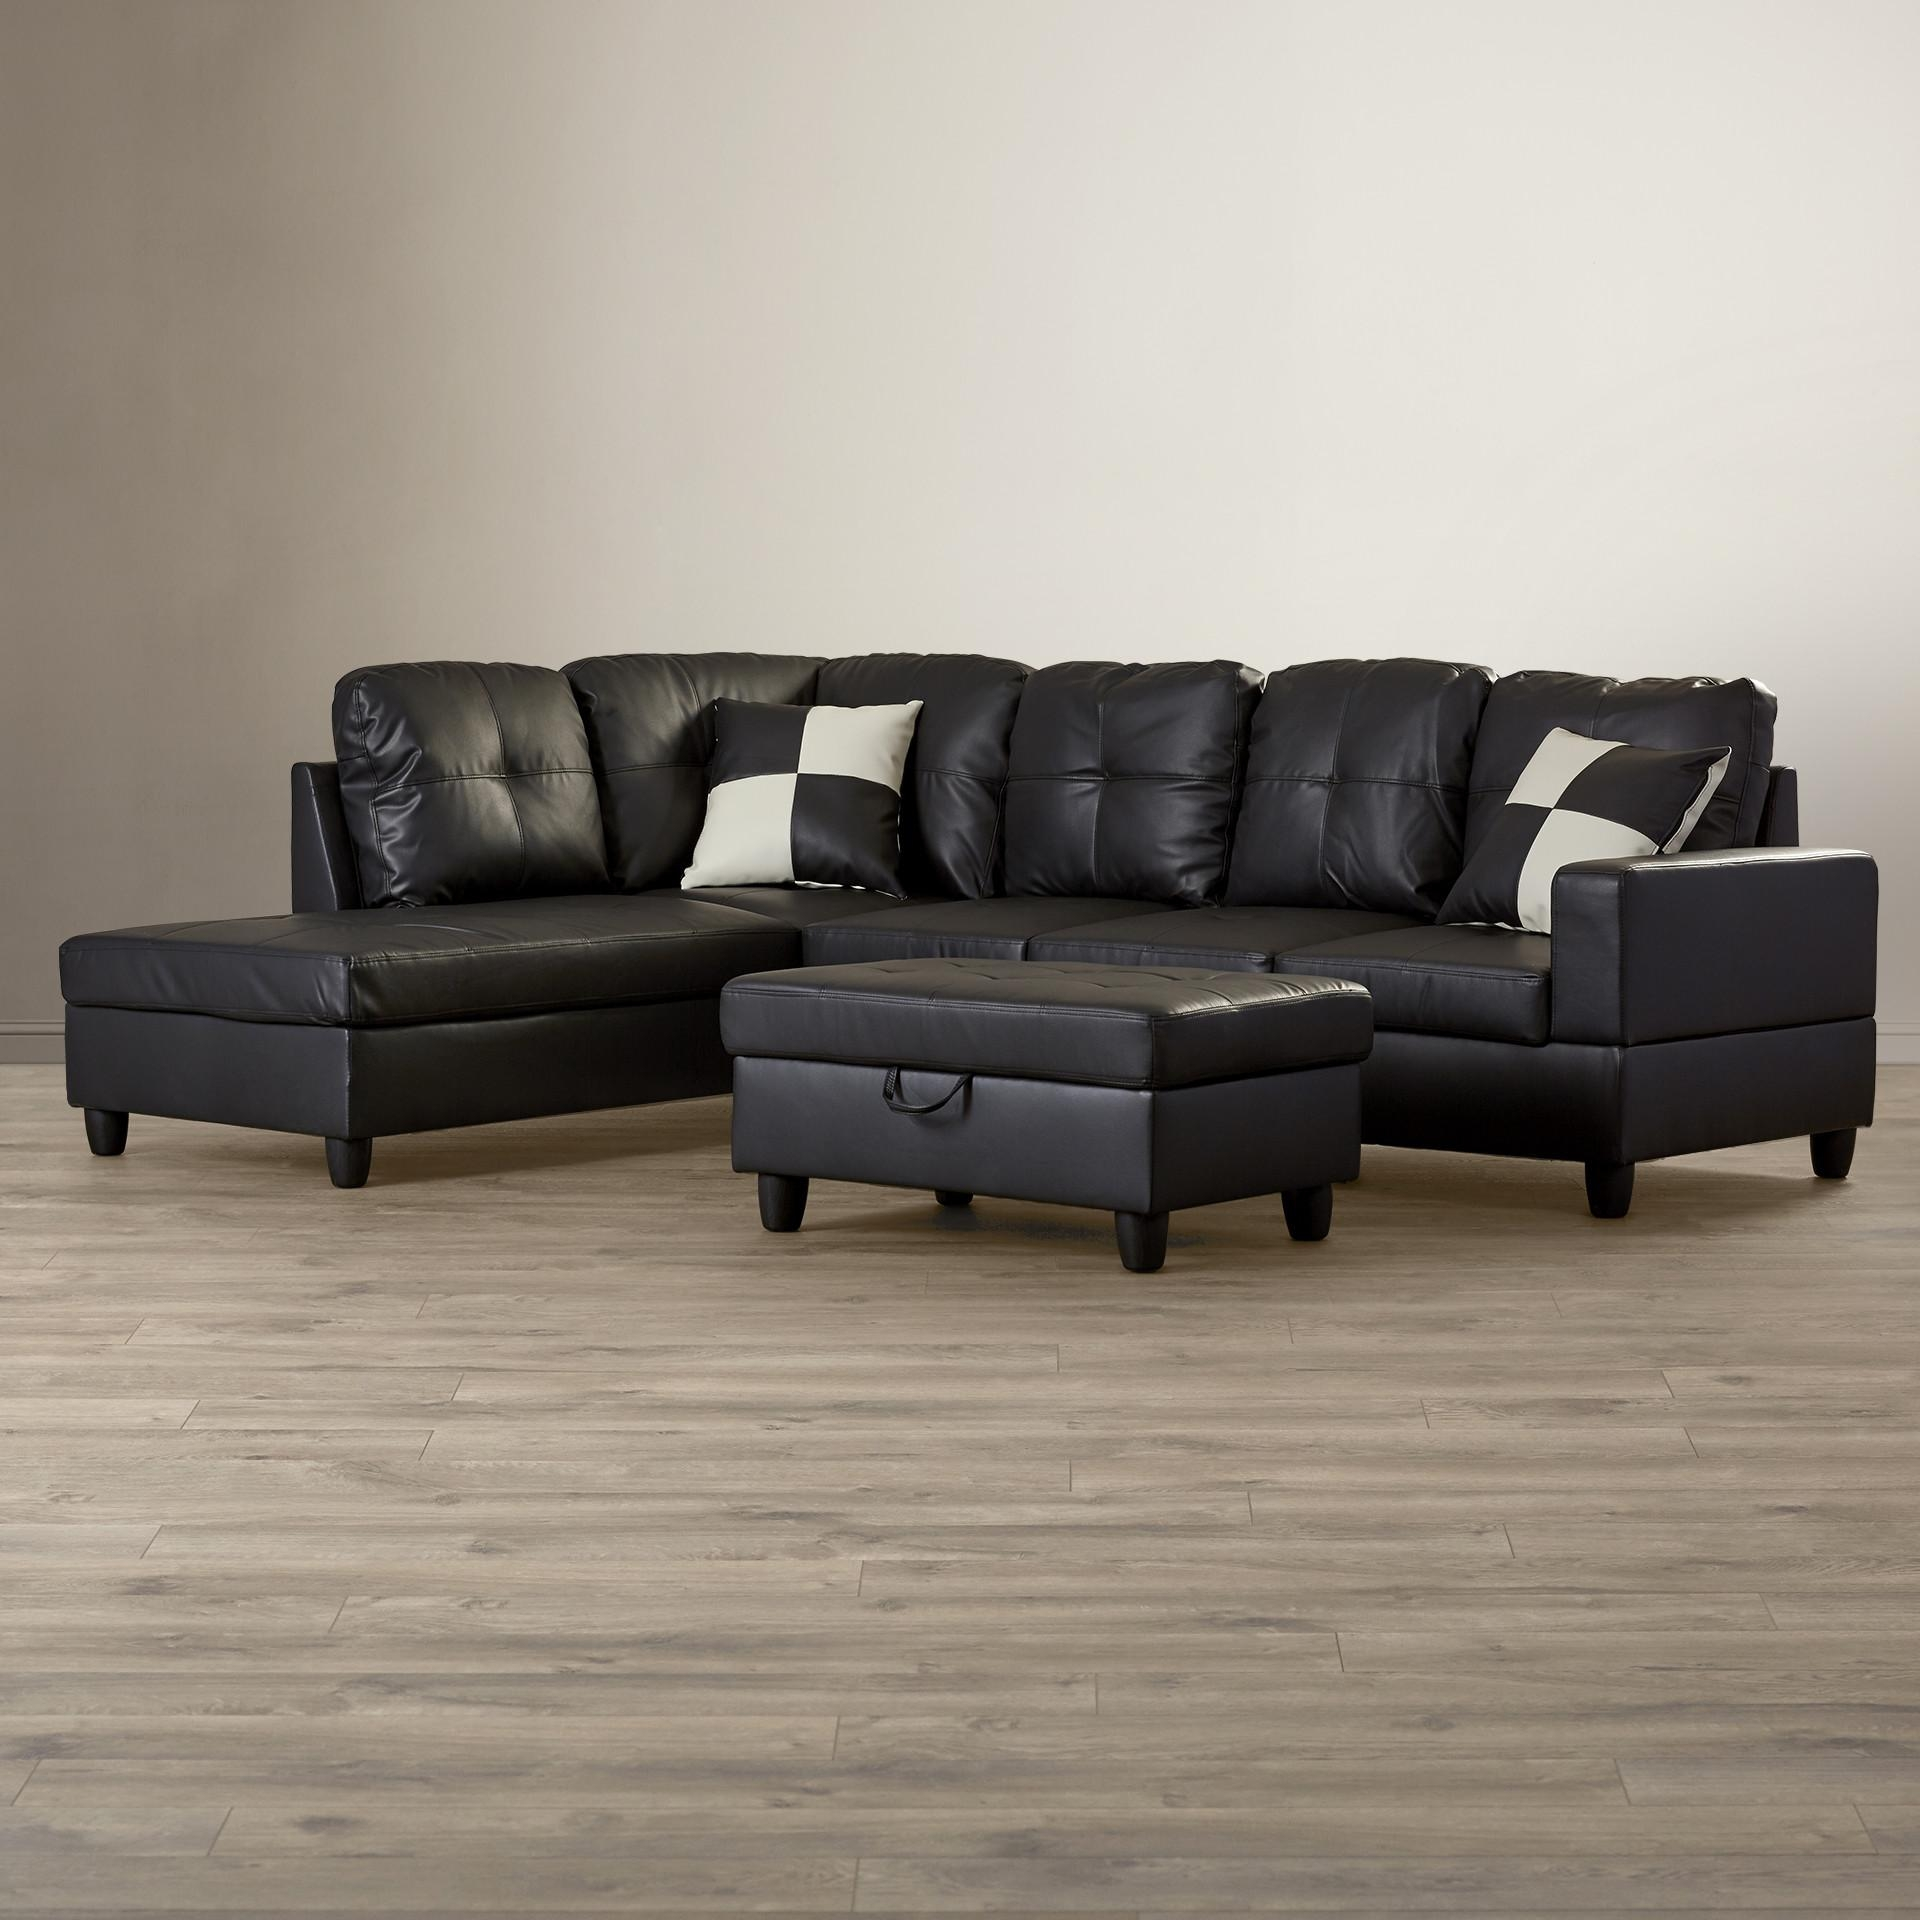 Furniture: Della Left Sectional Sofa With Storage Ottoman In Brown For Sectional Sofa With Storage (View 20 of 20)